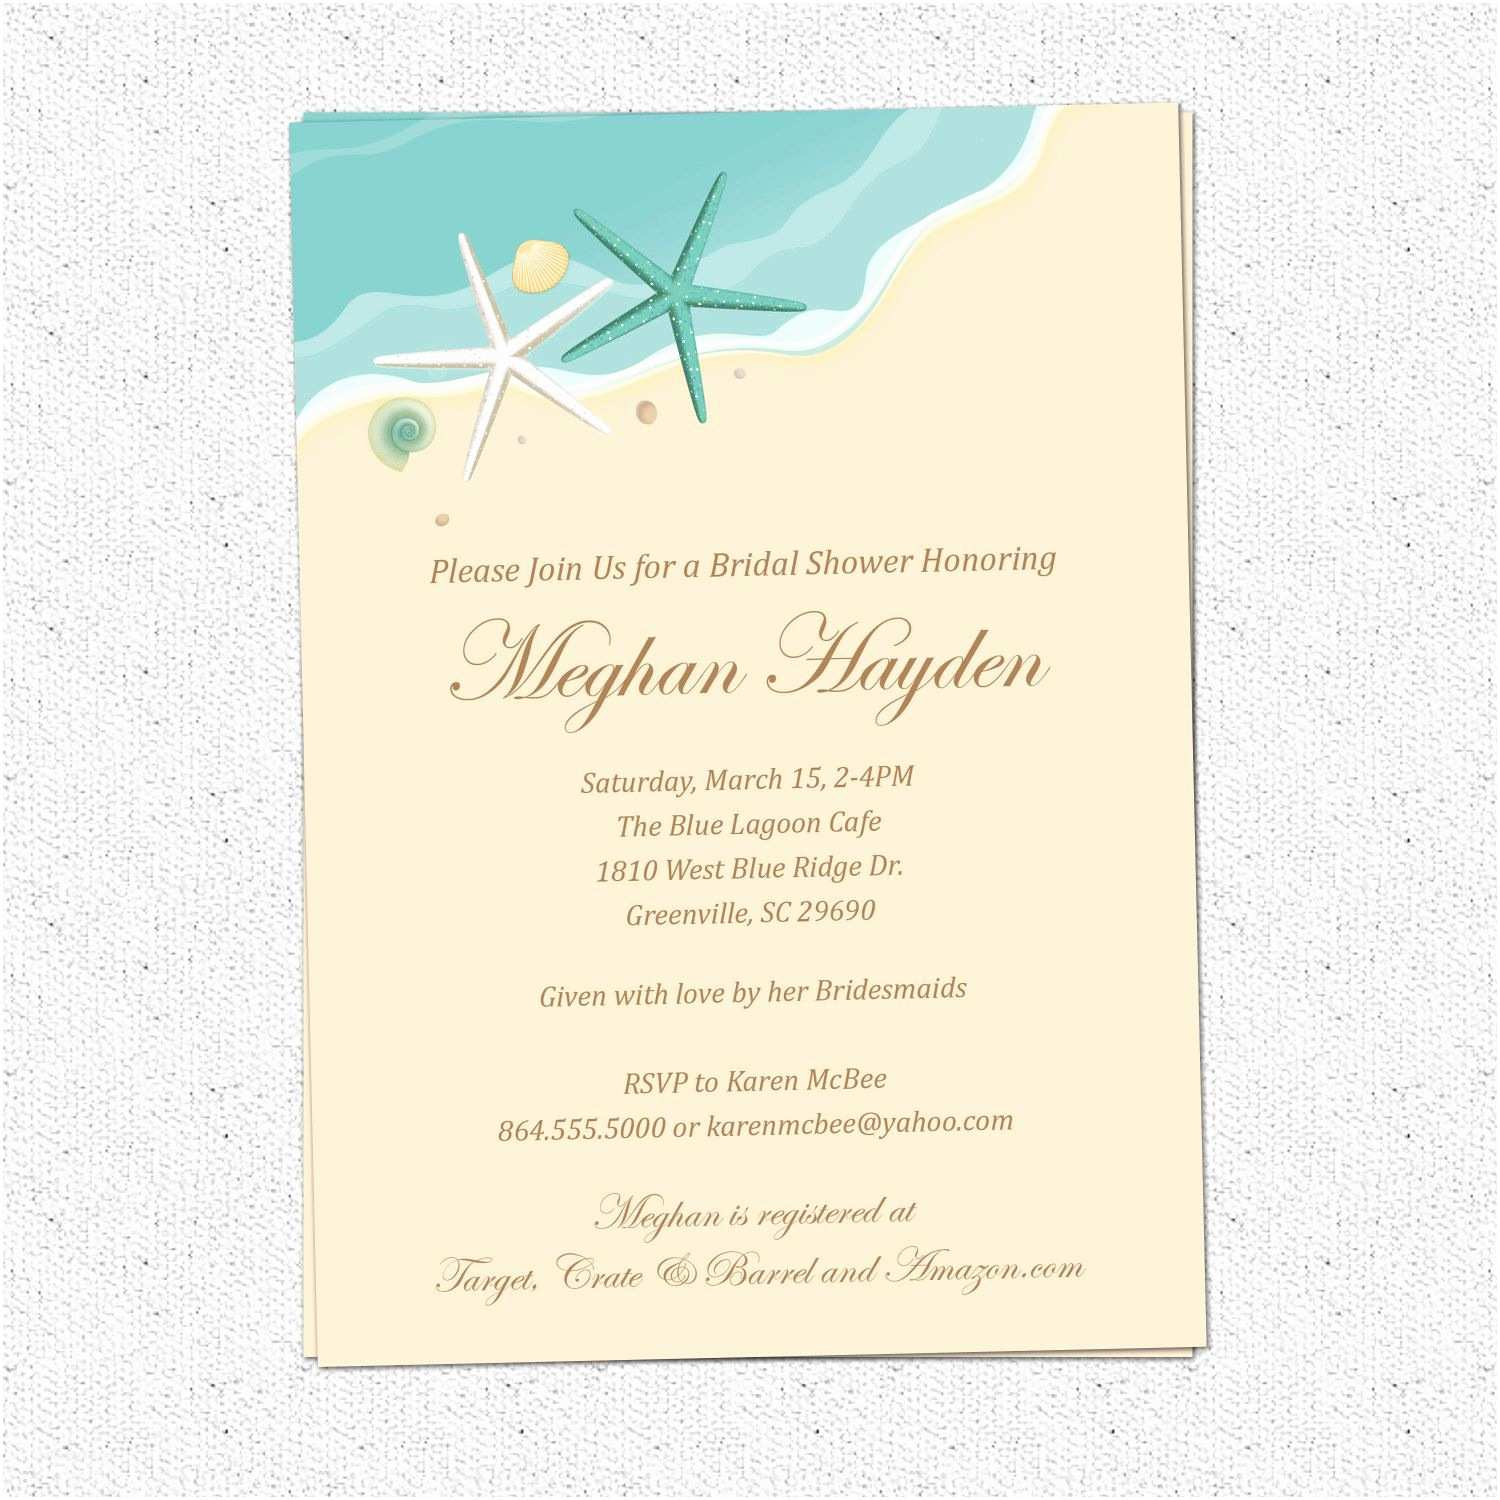 50th Wedding Invitation Templates Wedding Invitation Wording Rsvp Line Fresh 50th Wedding